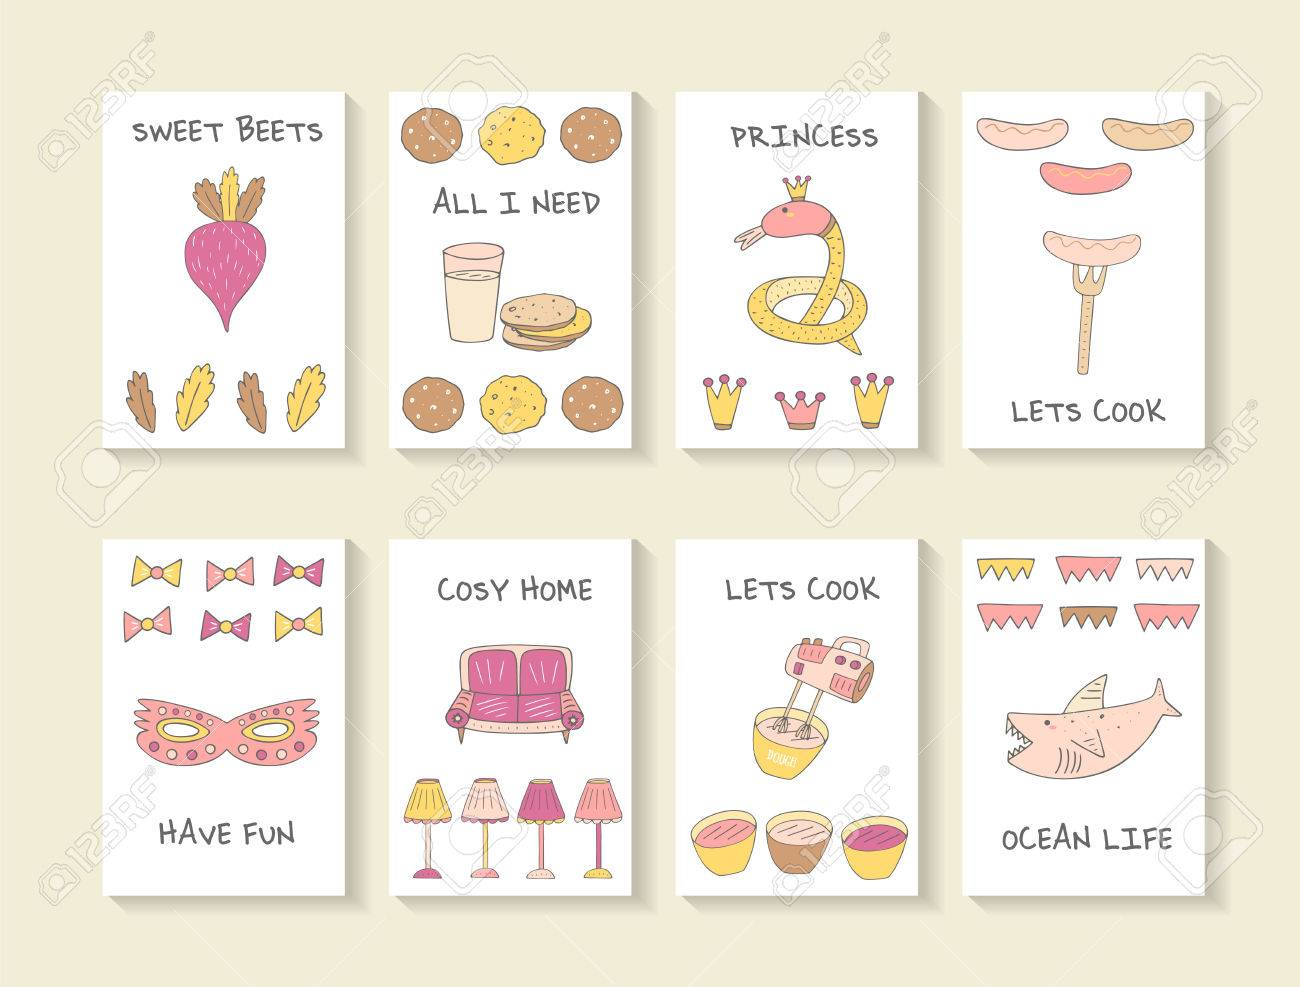 Cute hand drawn doodle baby shower cards, brochures, invitations with beat, cookie, glass of milk, snake, crown, sausage, fork, mask, sofa, lamp, mixer, shark. Cartoon objects, animals background - 54766075